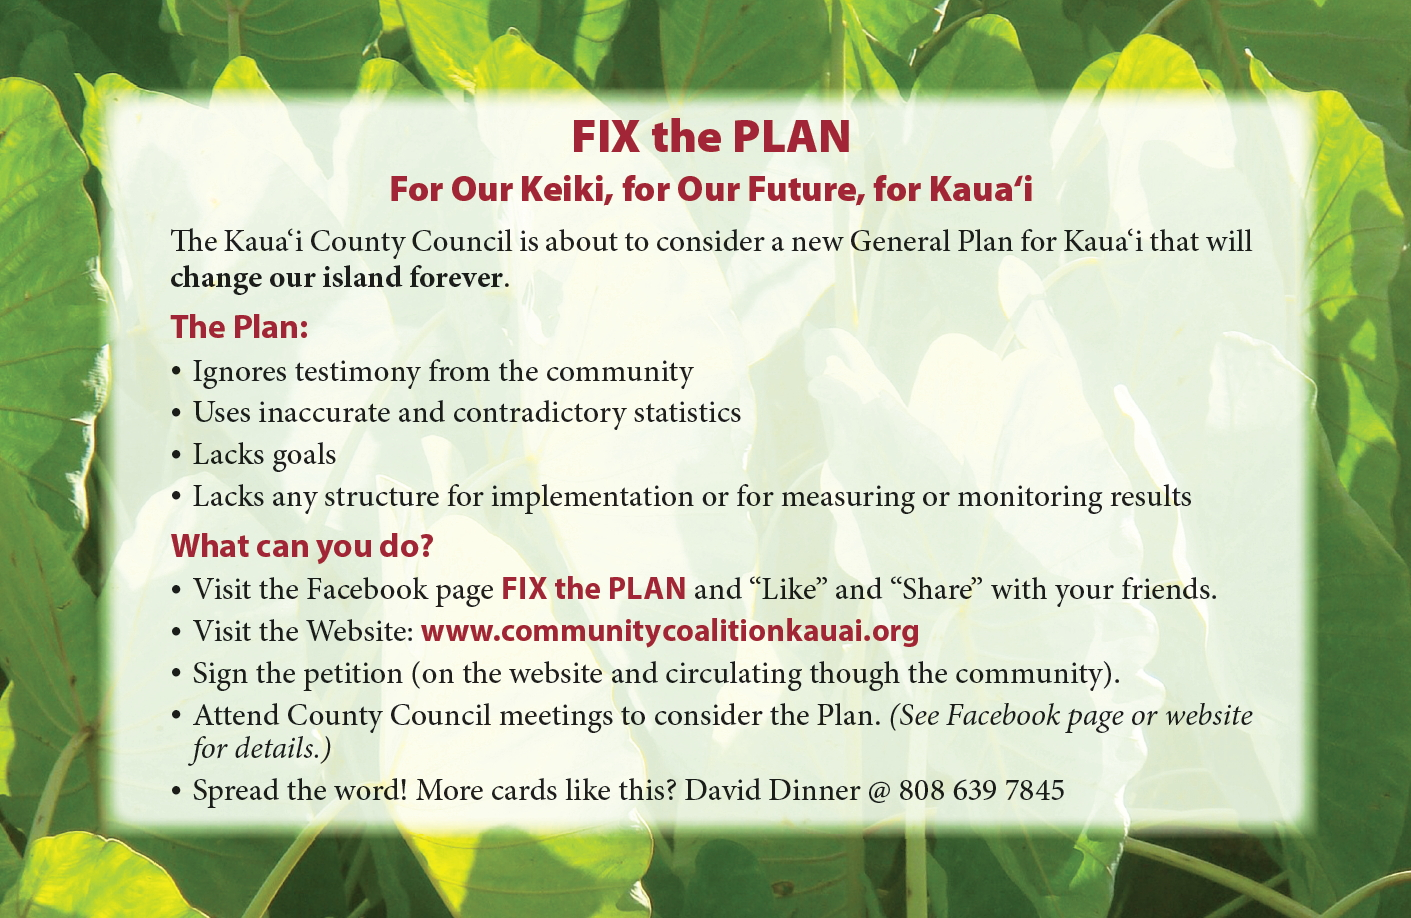 Fix the Kauai General Plan Flyer